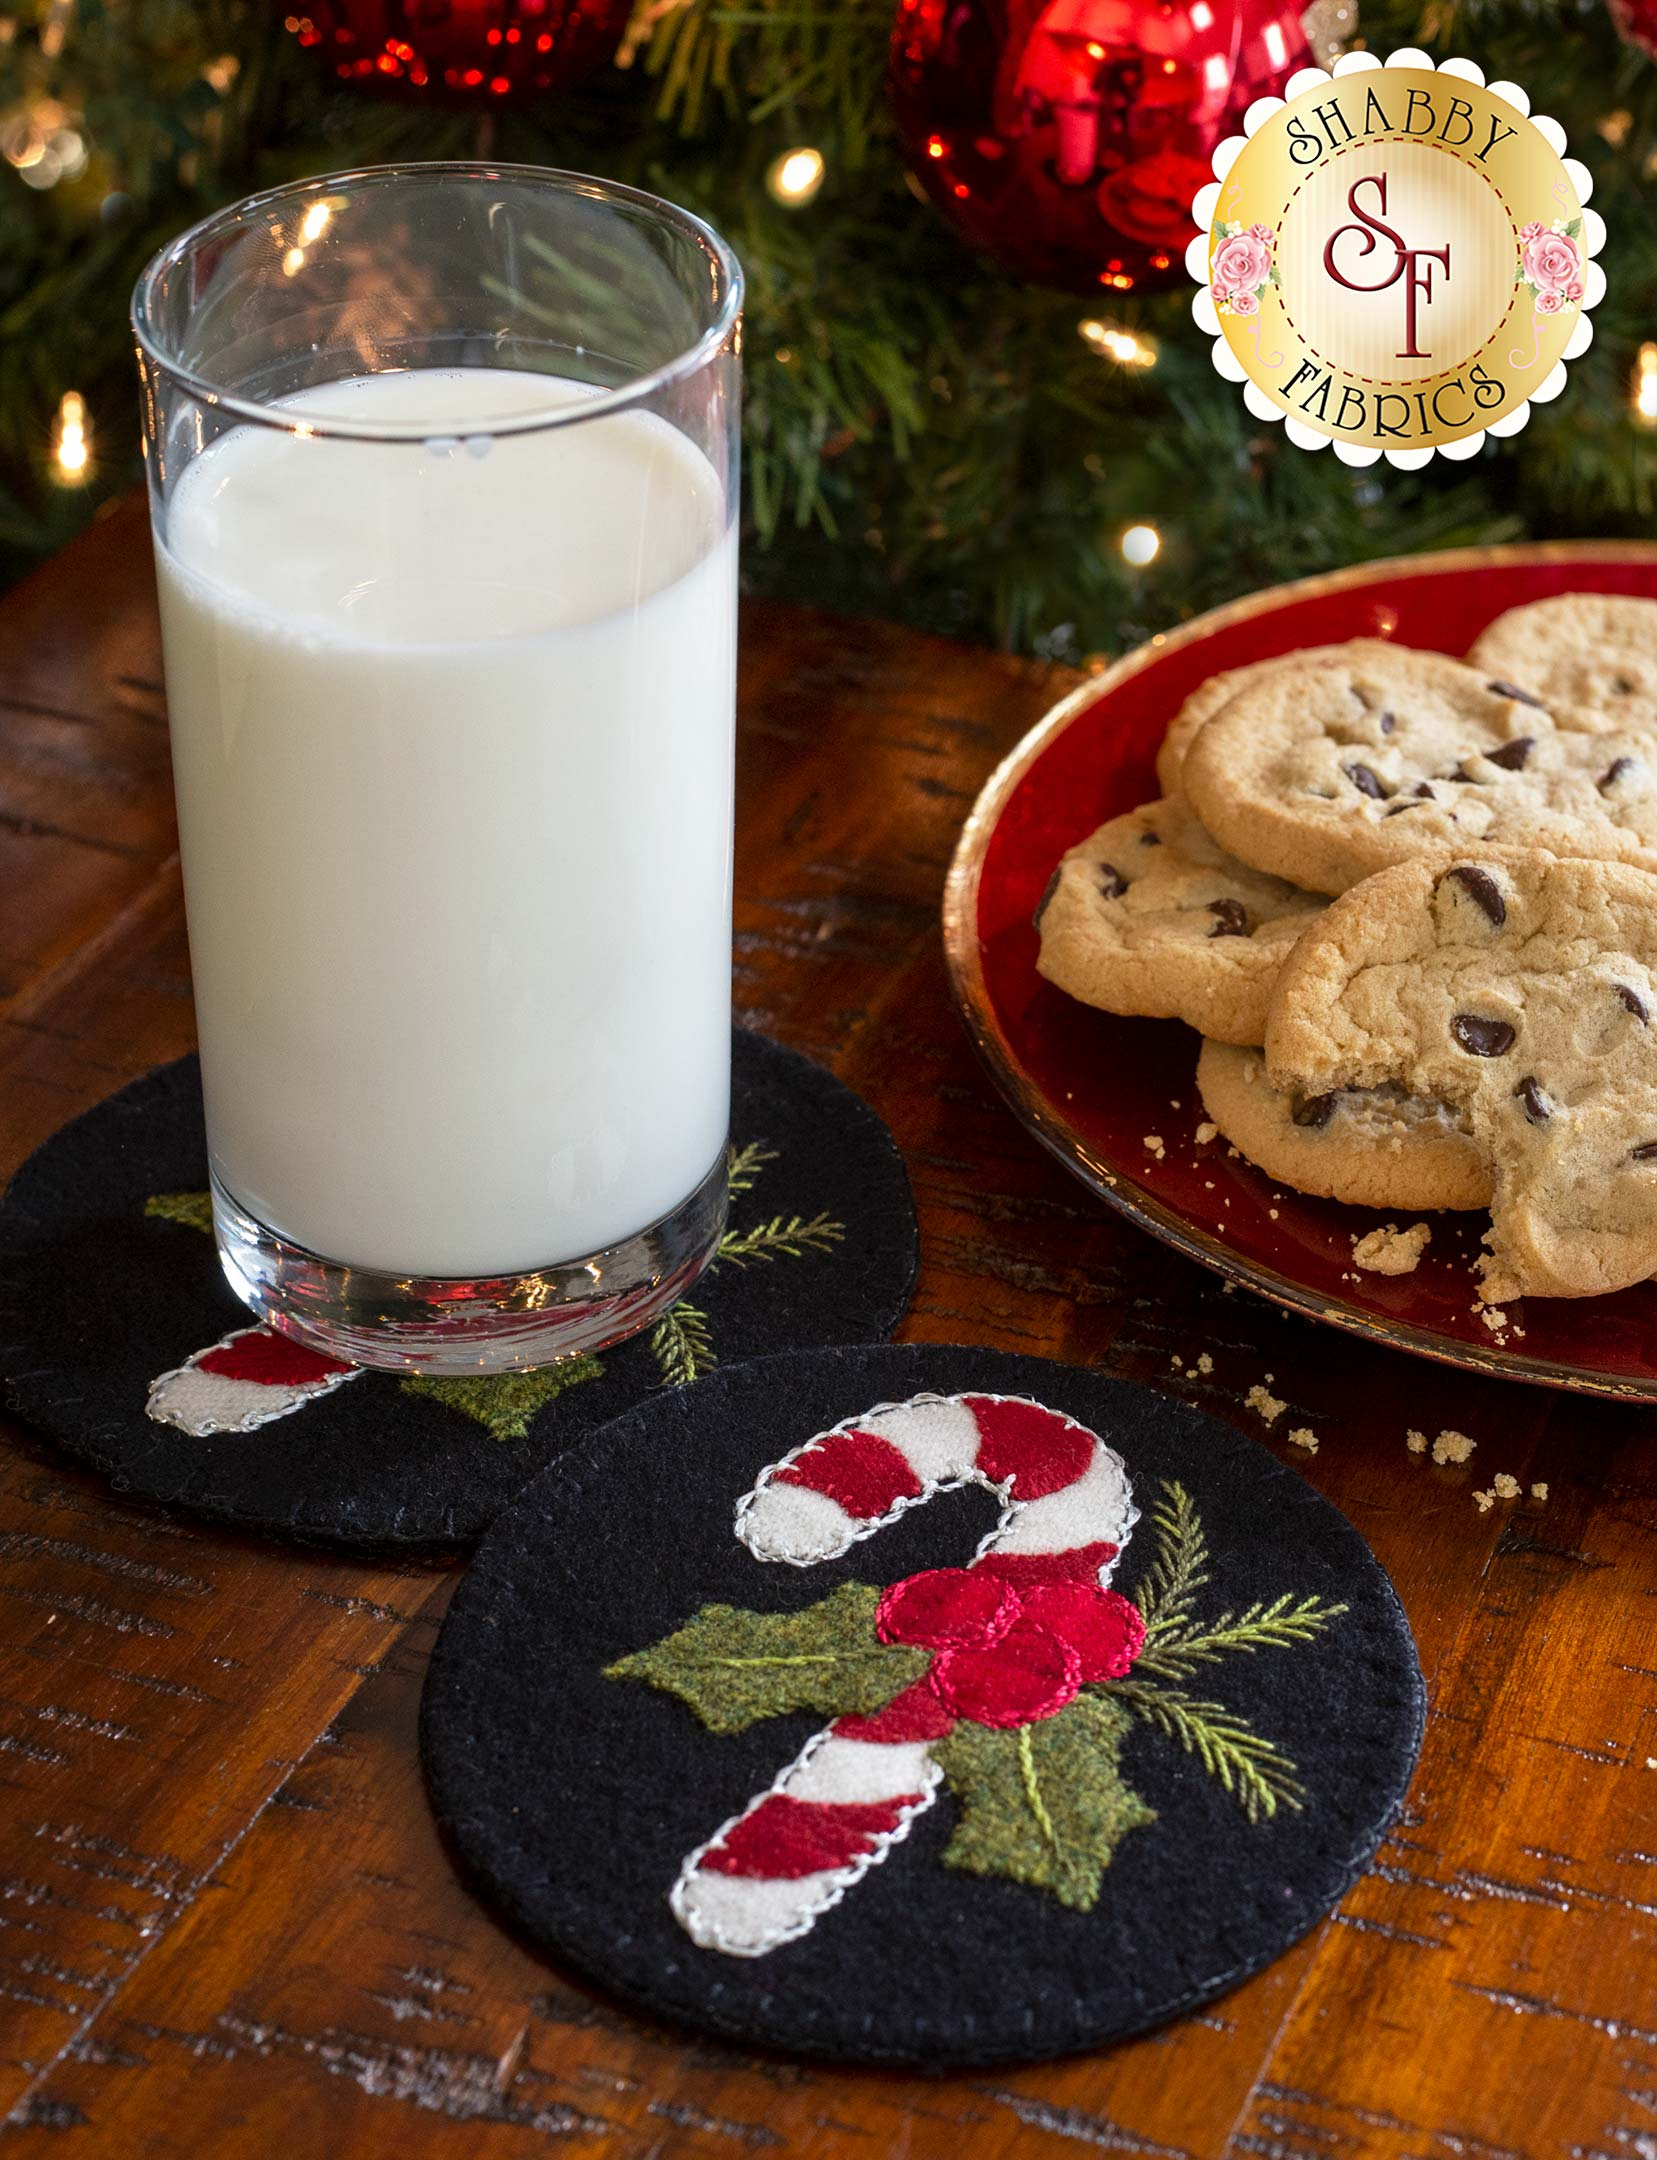 Candy Cane Wool Coaster with a plate of cookies and a glass of milk by a Christmas tree.